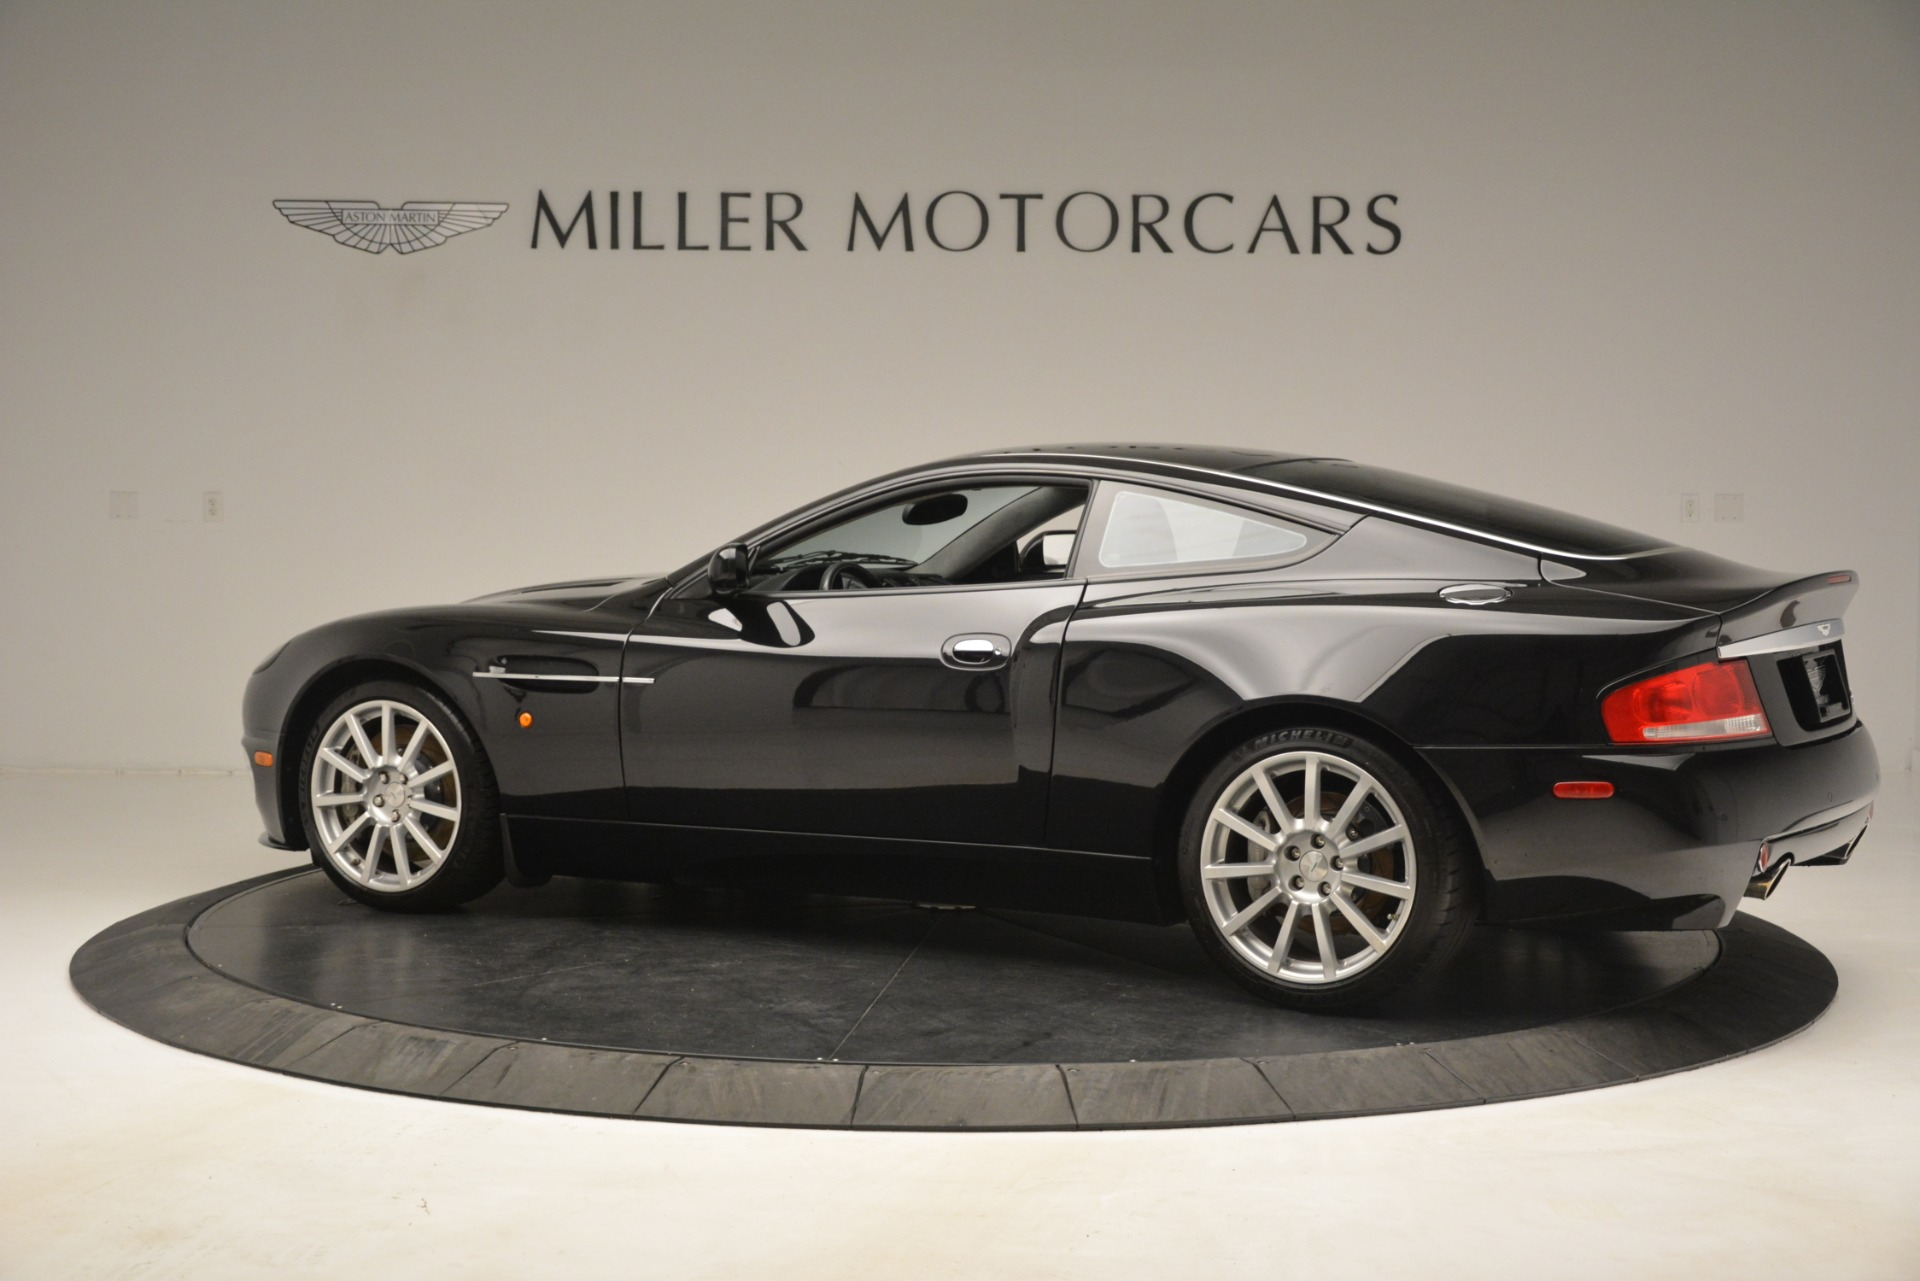 Used 2005 Aston Martin V12 Vanquish S Coupe For Sale In Westport, CT 3218_p4